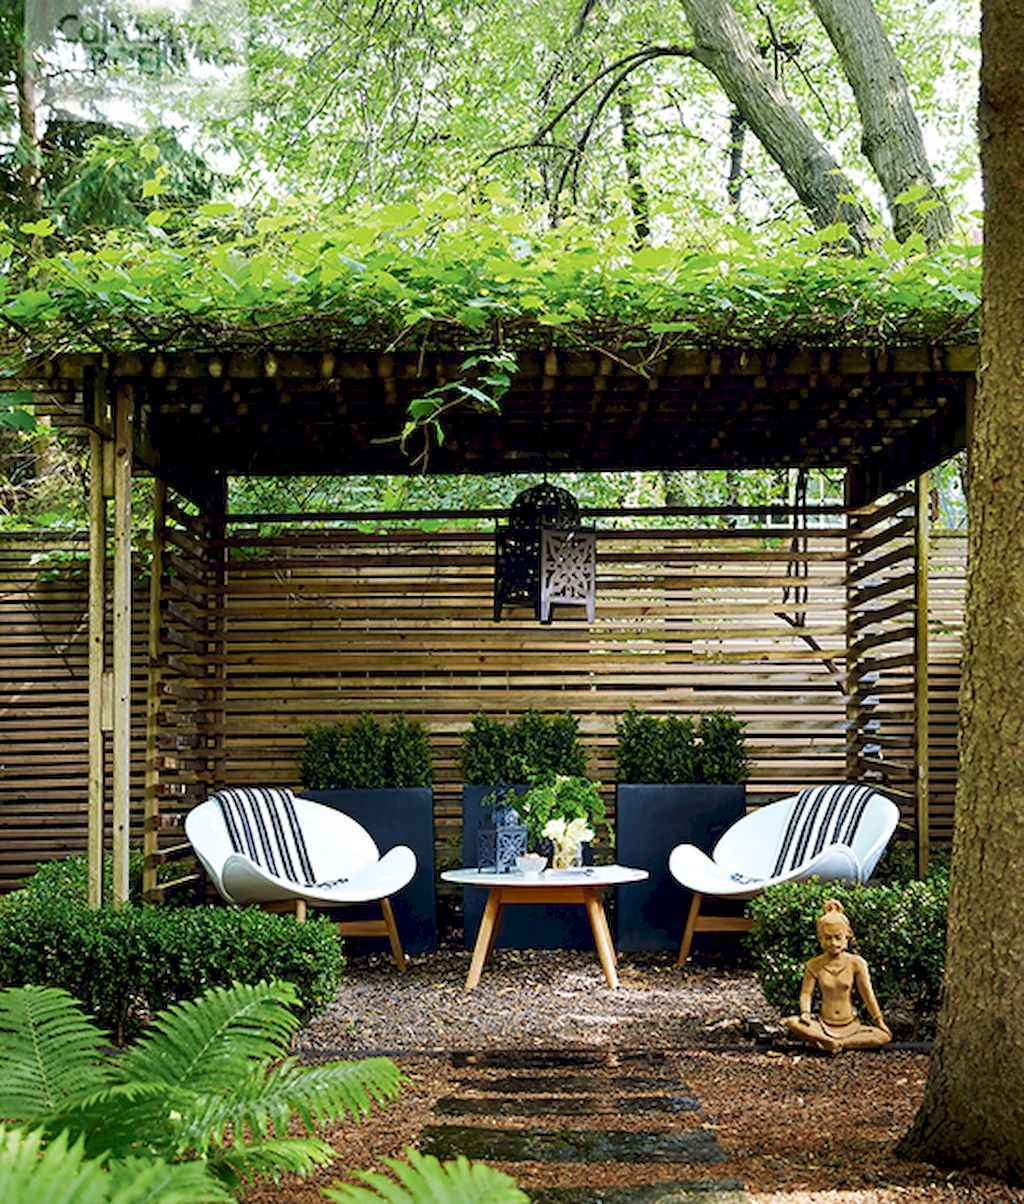 70 Creative Diy Backyard Privacy Ideas On A Budget Roomadness with regard to Ideas For Backyard Privacy